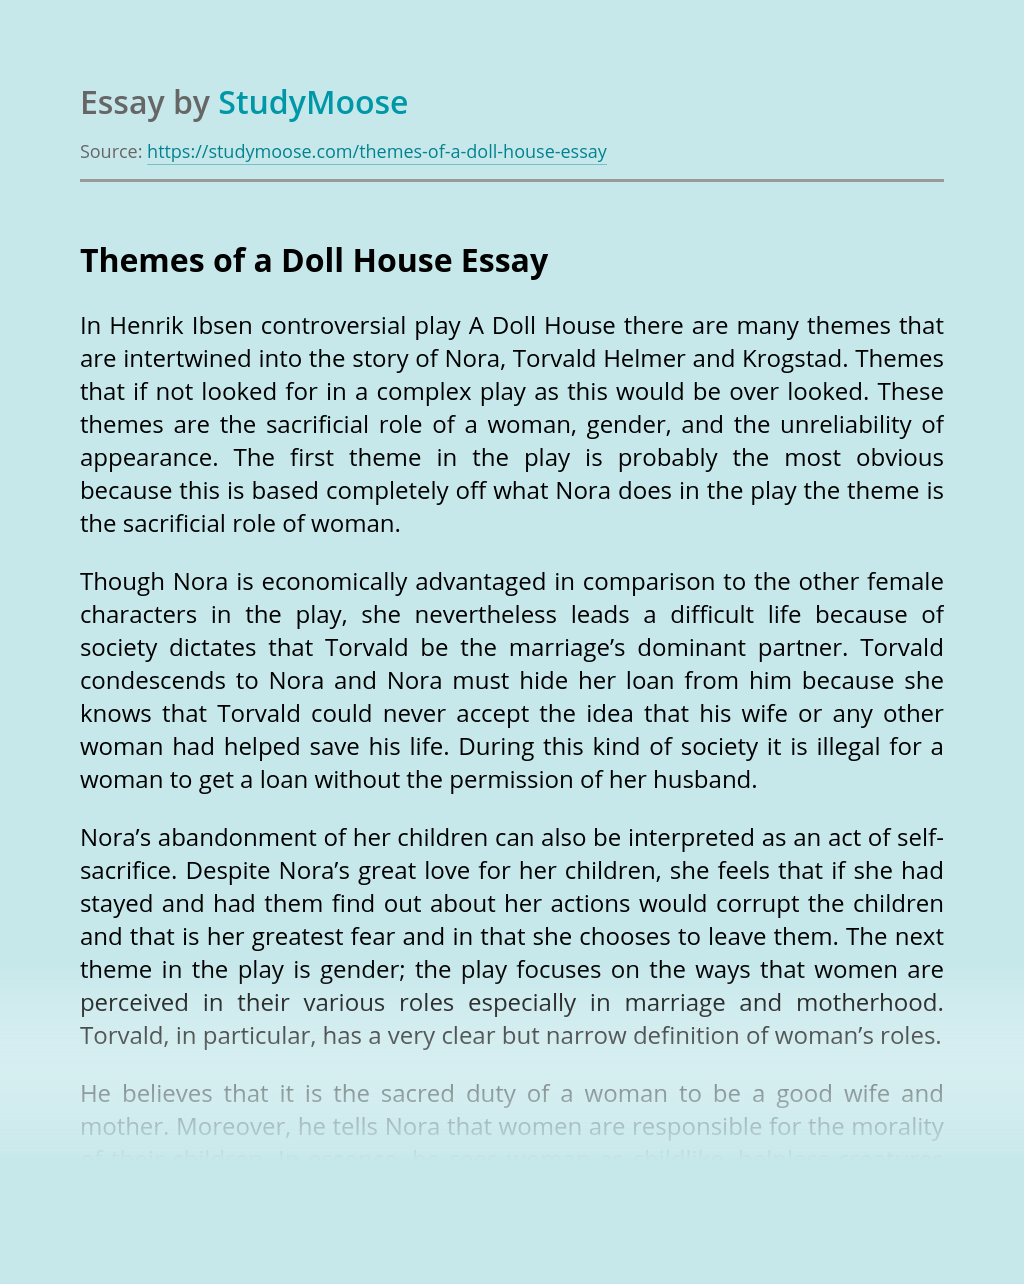 Themes of a Doll House